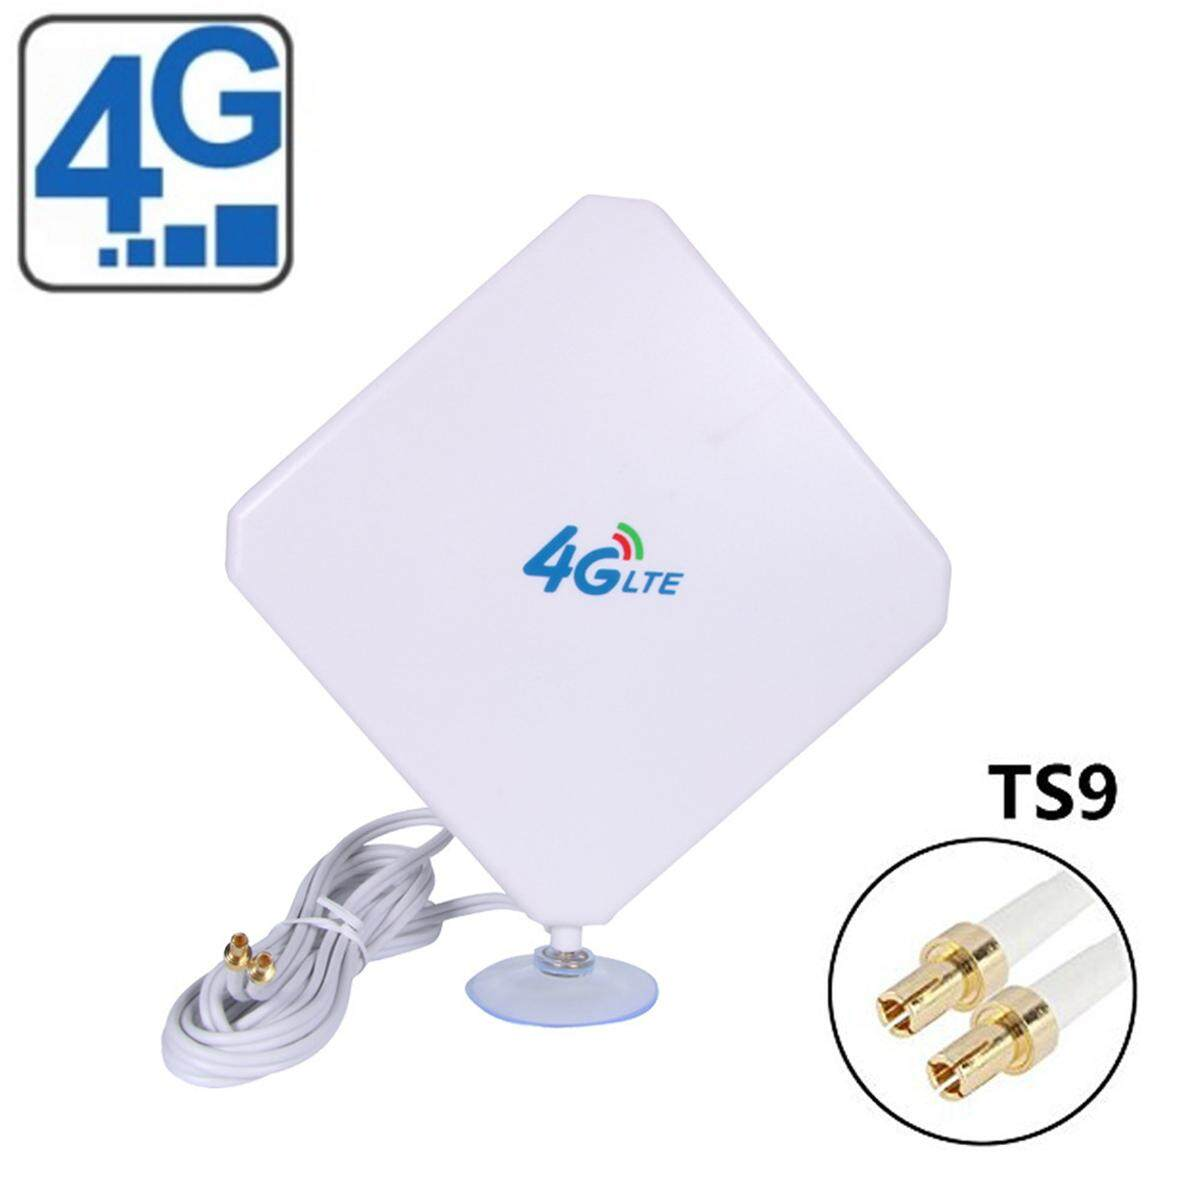 4G/LTE CellPhone Broadband Antenna Signal Booster Repeater Amplifier With Cable